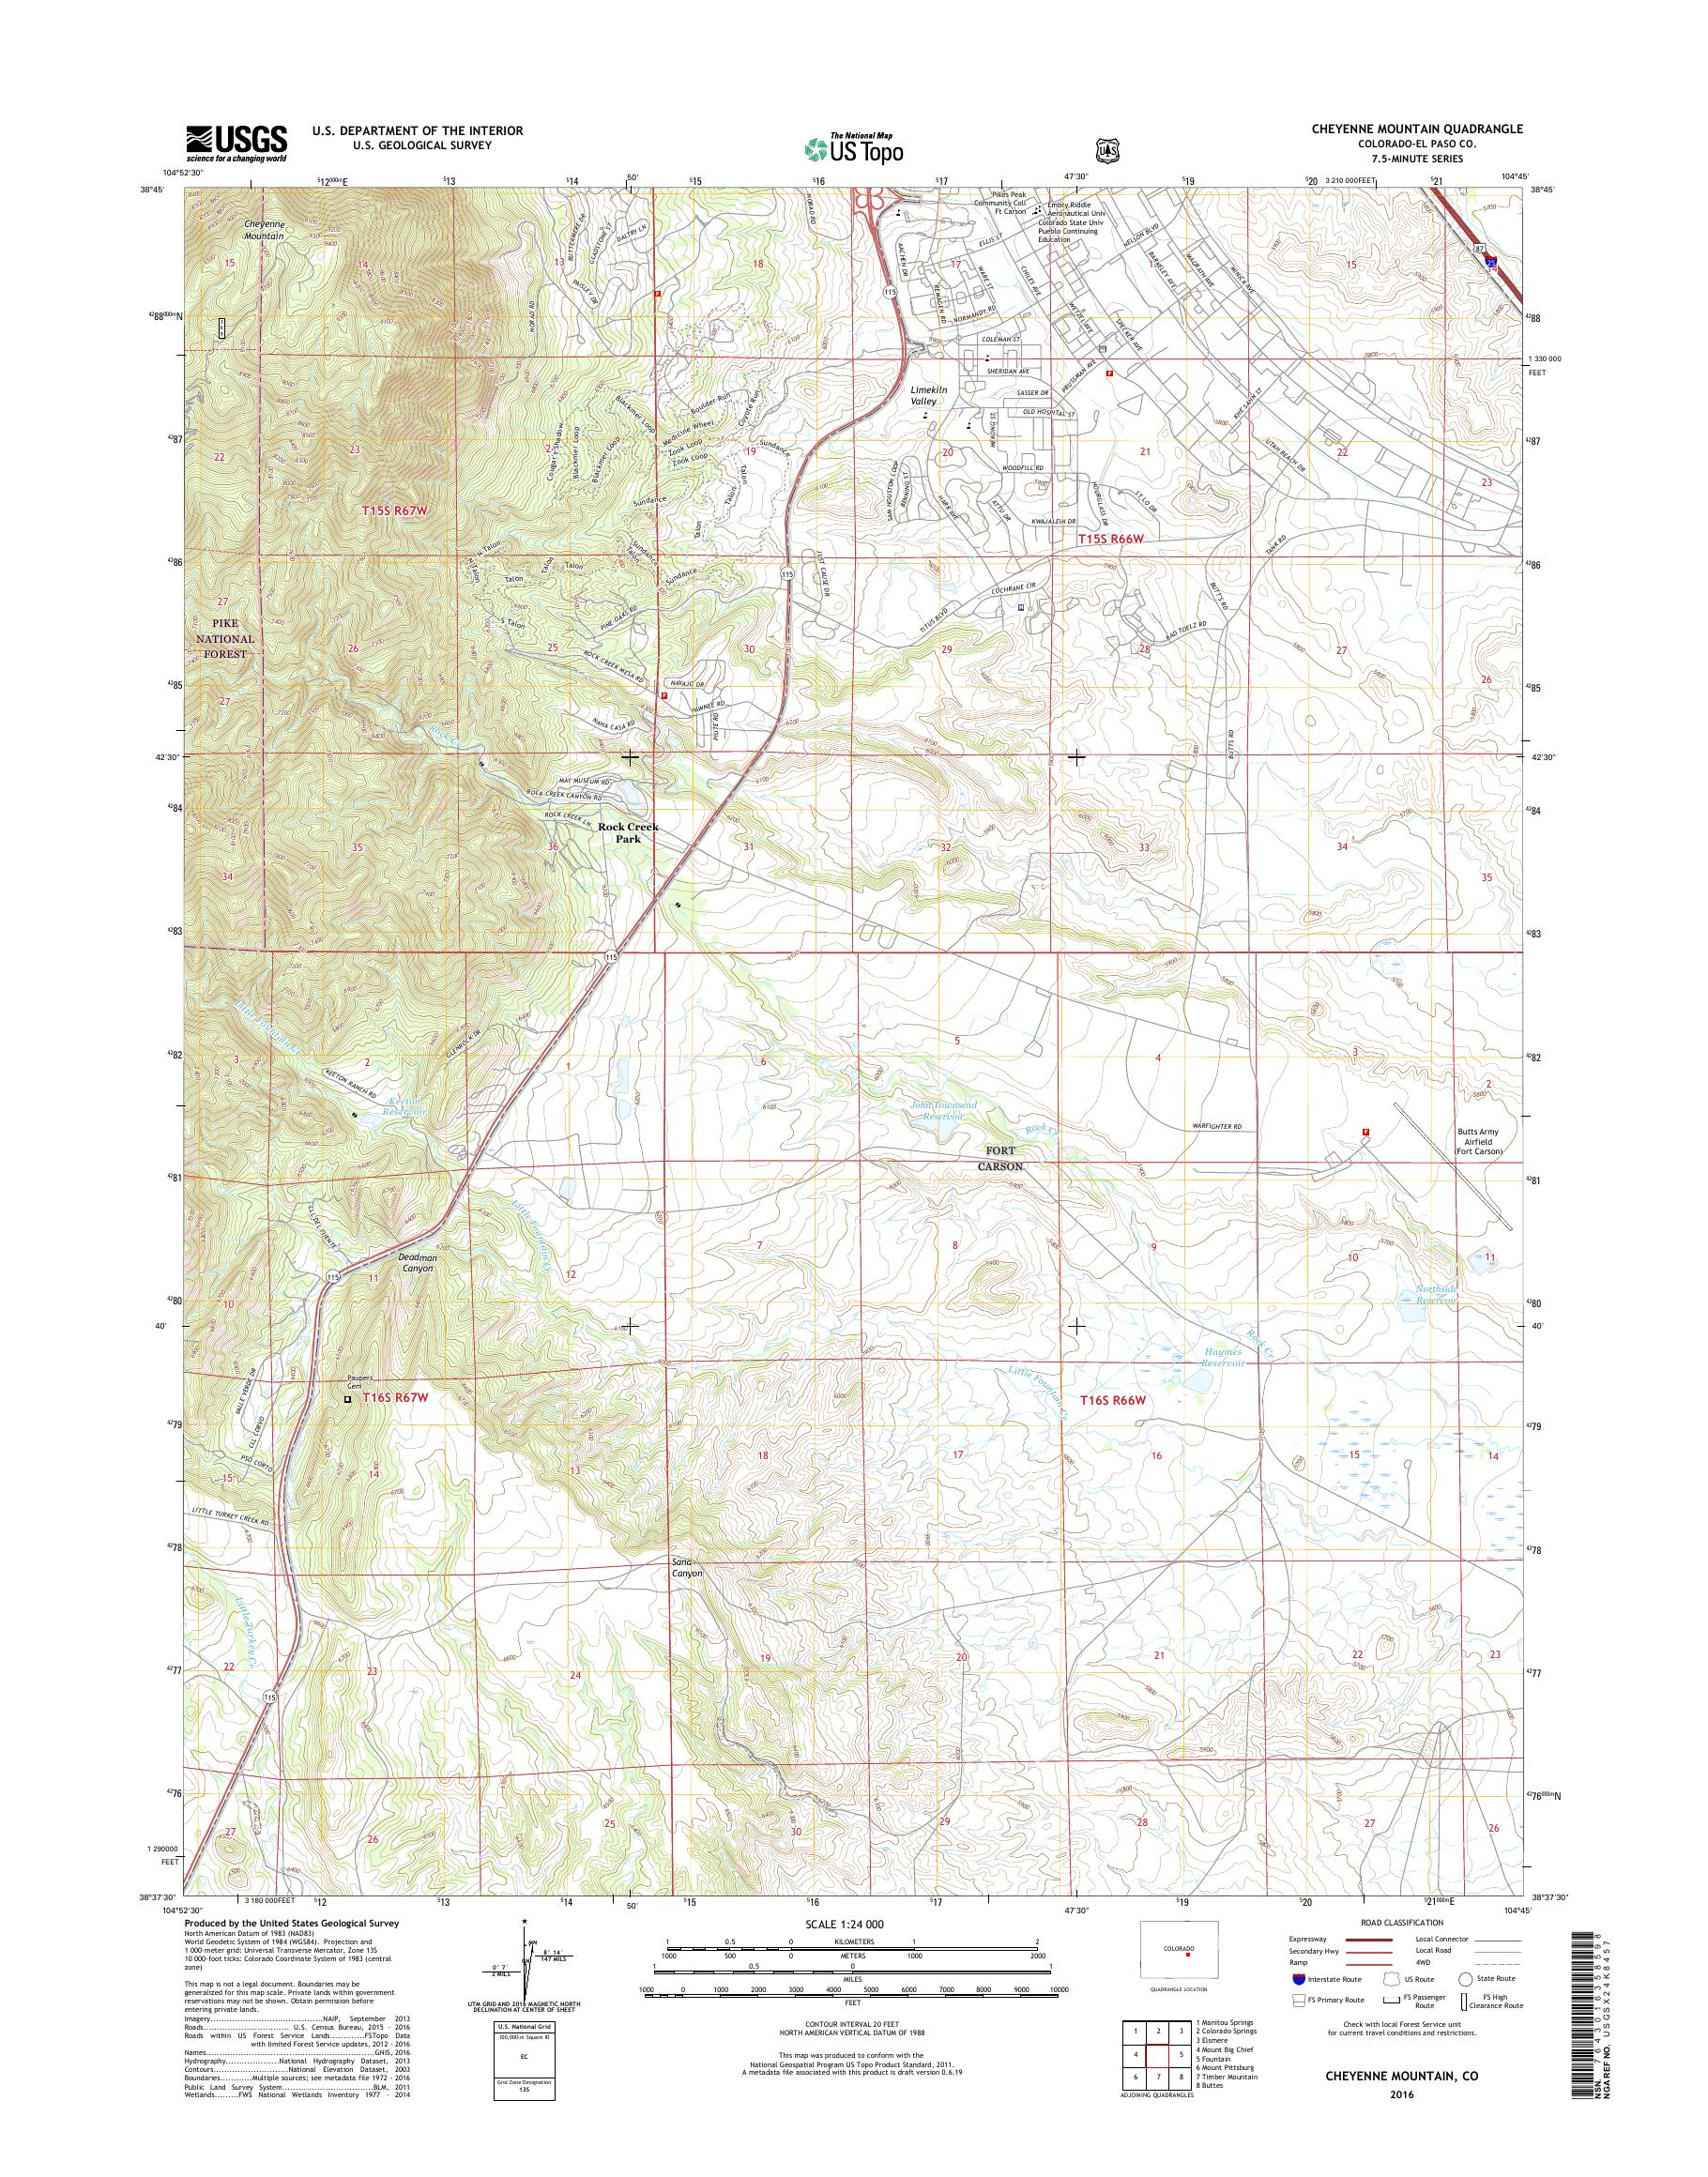 MyTopo Cheyenne Mountain, Colorado USGS Quad Topo Map on